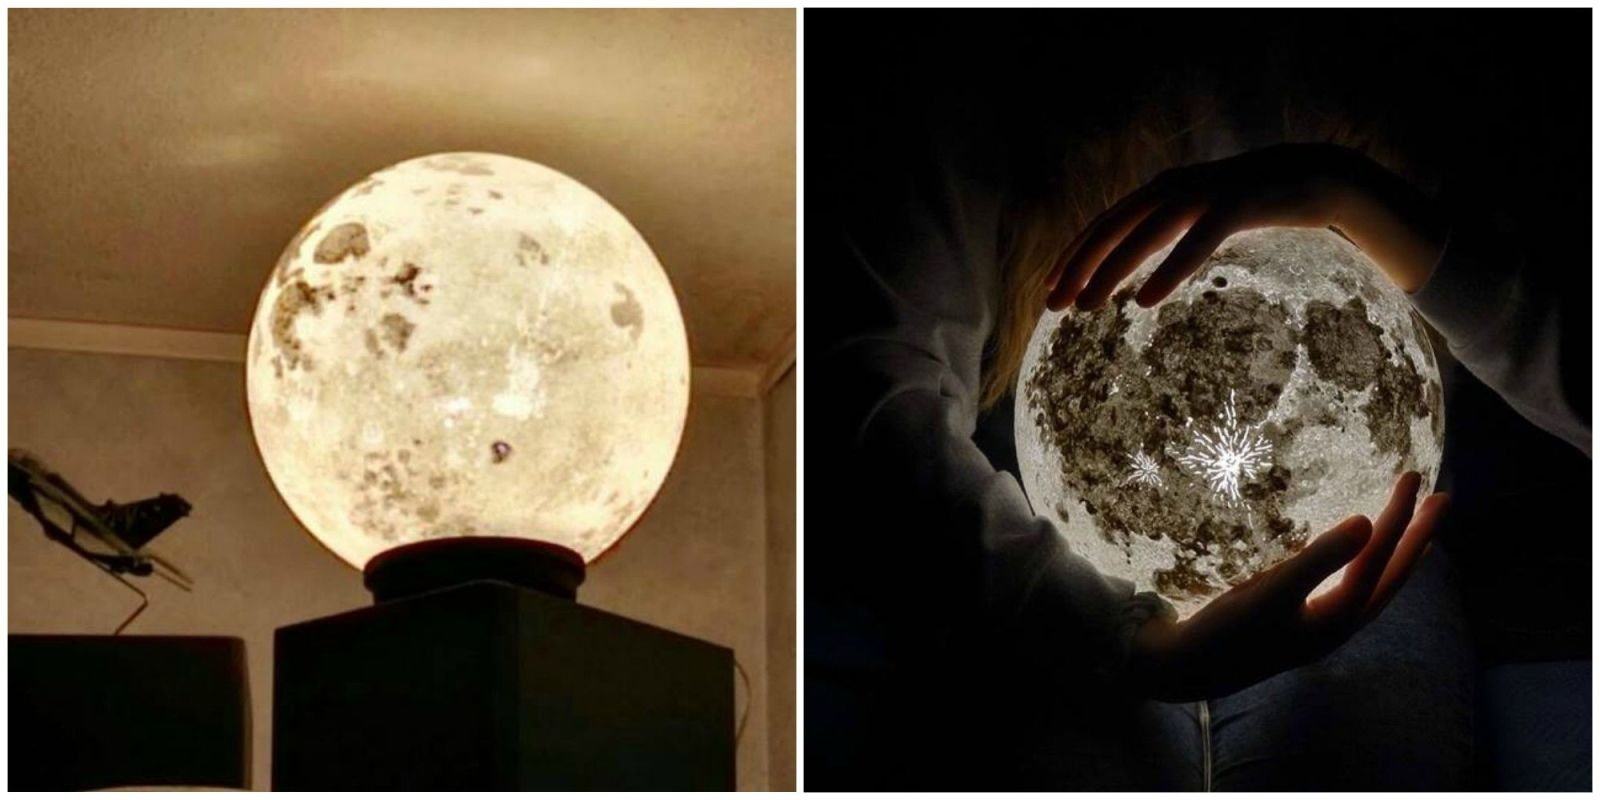 Enjoy Full Moon Every Night With These Lamps From Pulsar